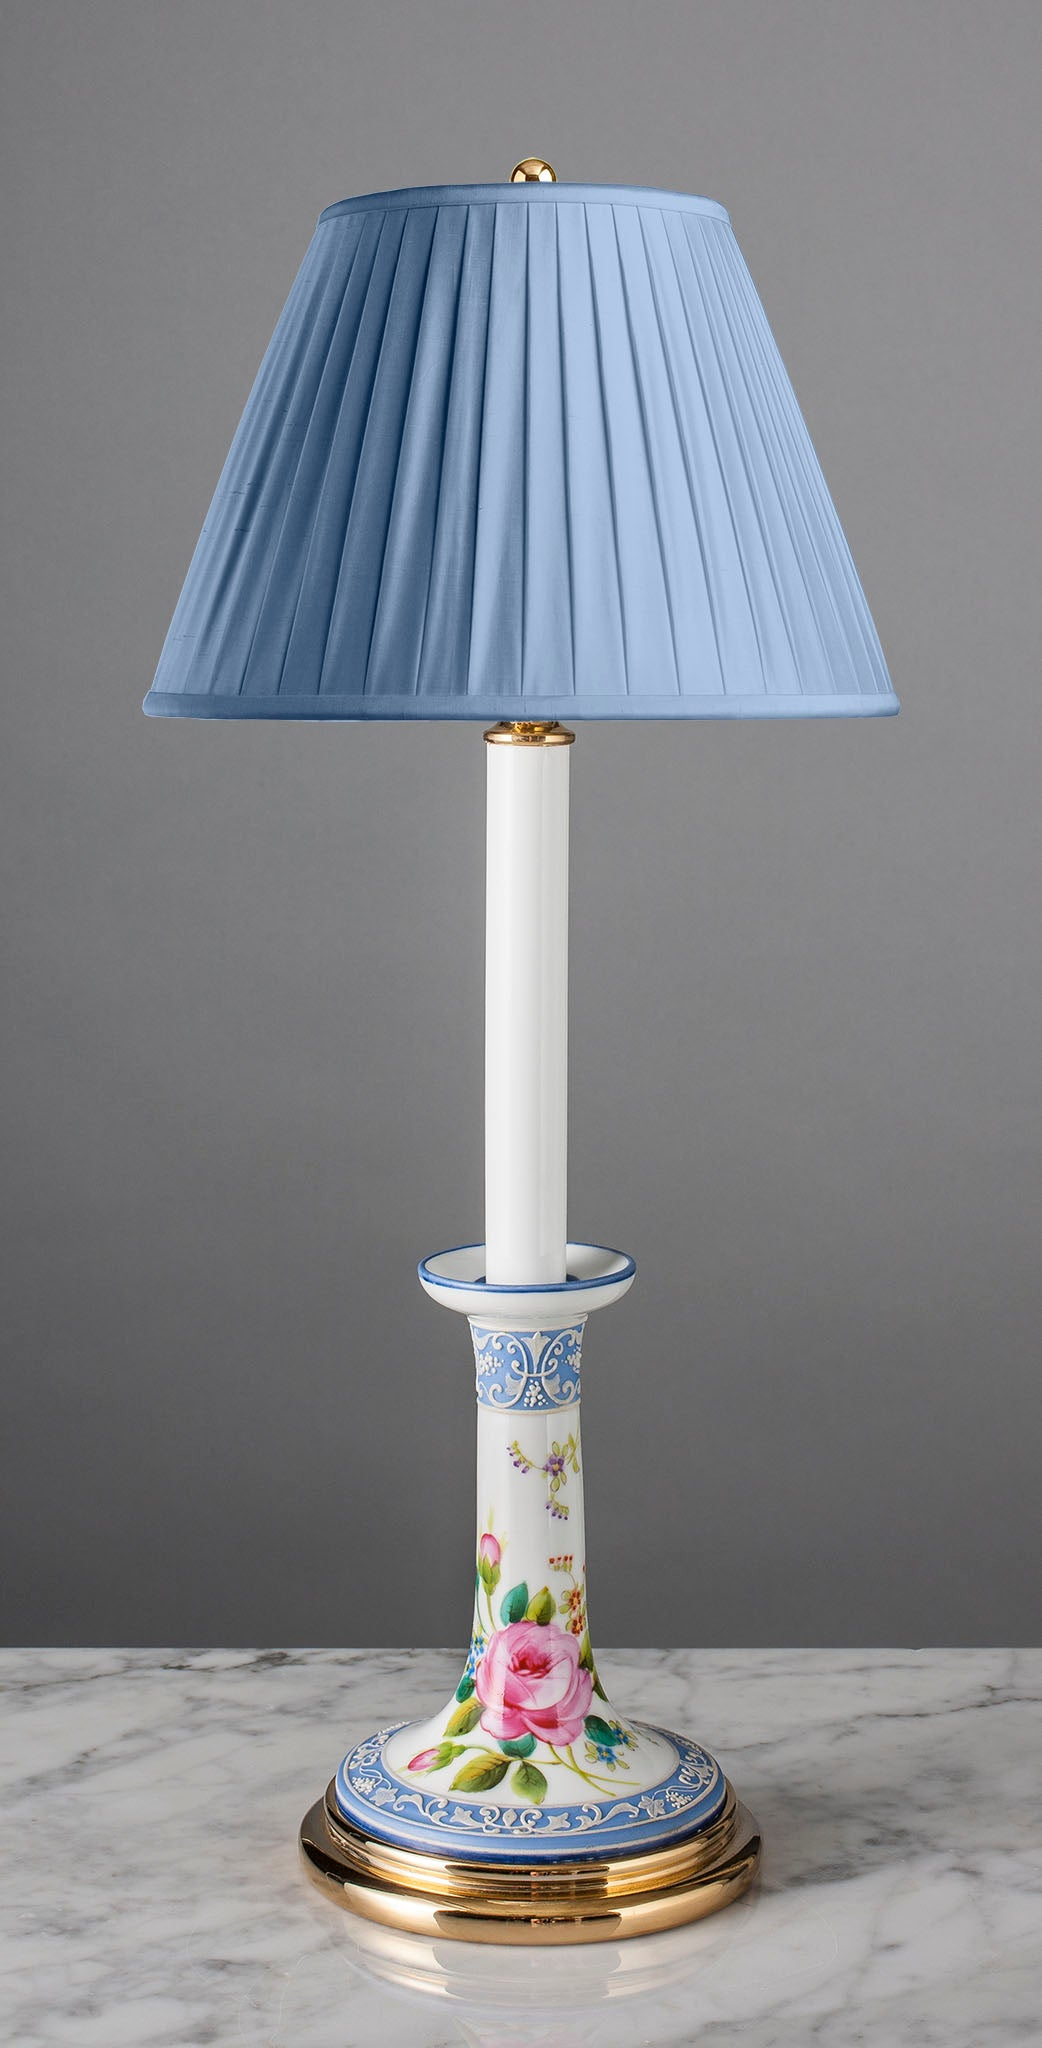 E098  A Japanese Wedgwood Style Moriage Work Candlestick Accent Lamp - Circa 1910